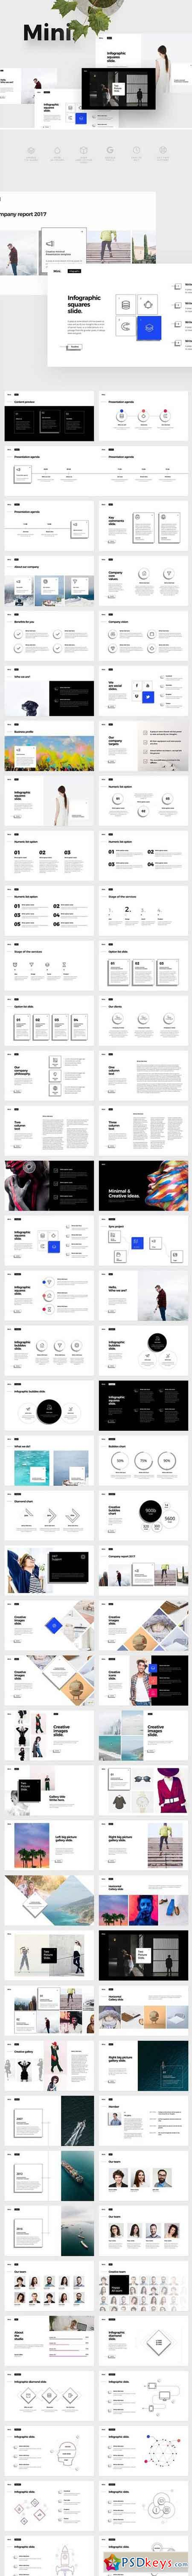 MINI Powerpoint Template 1718247